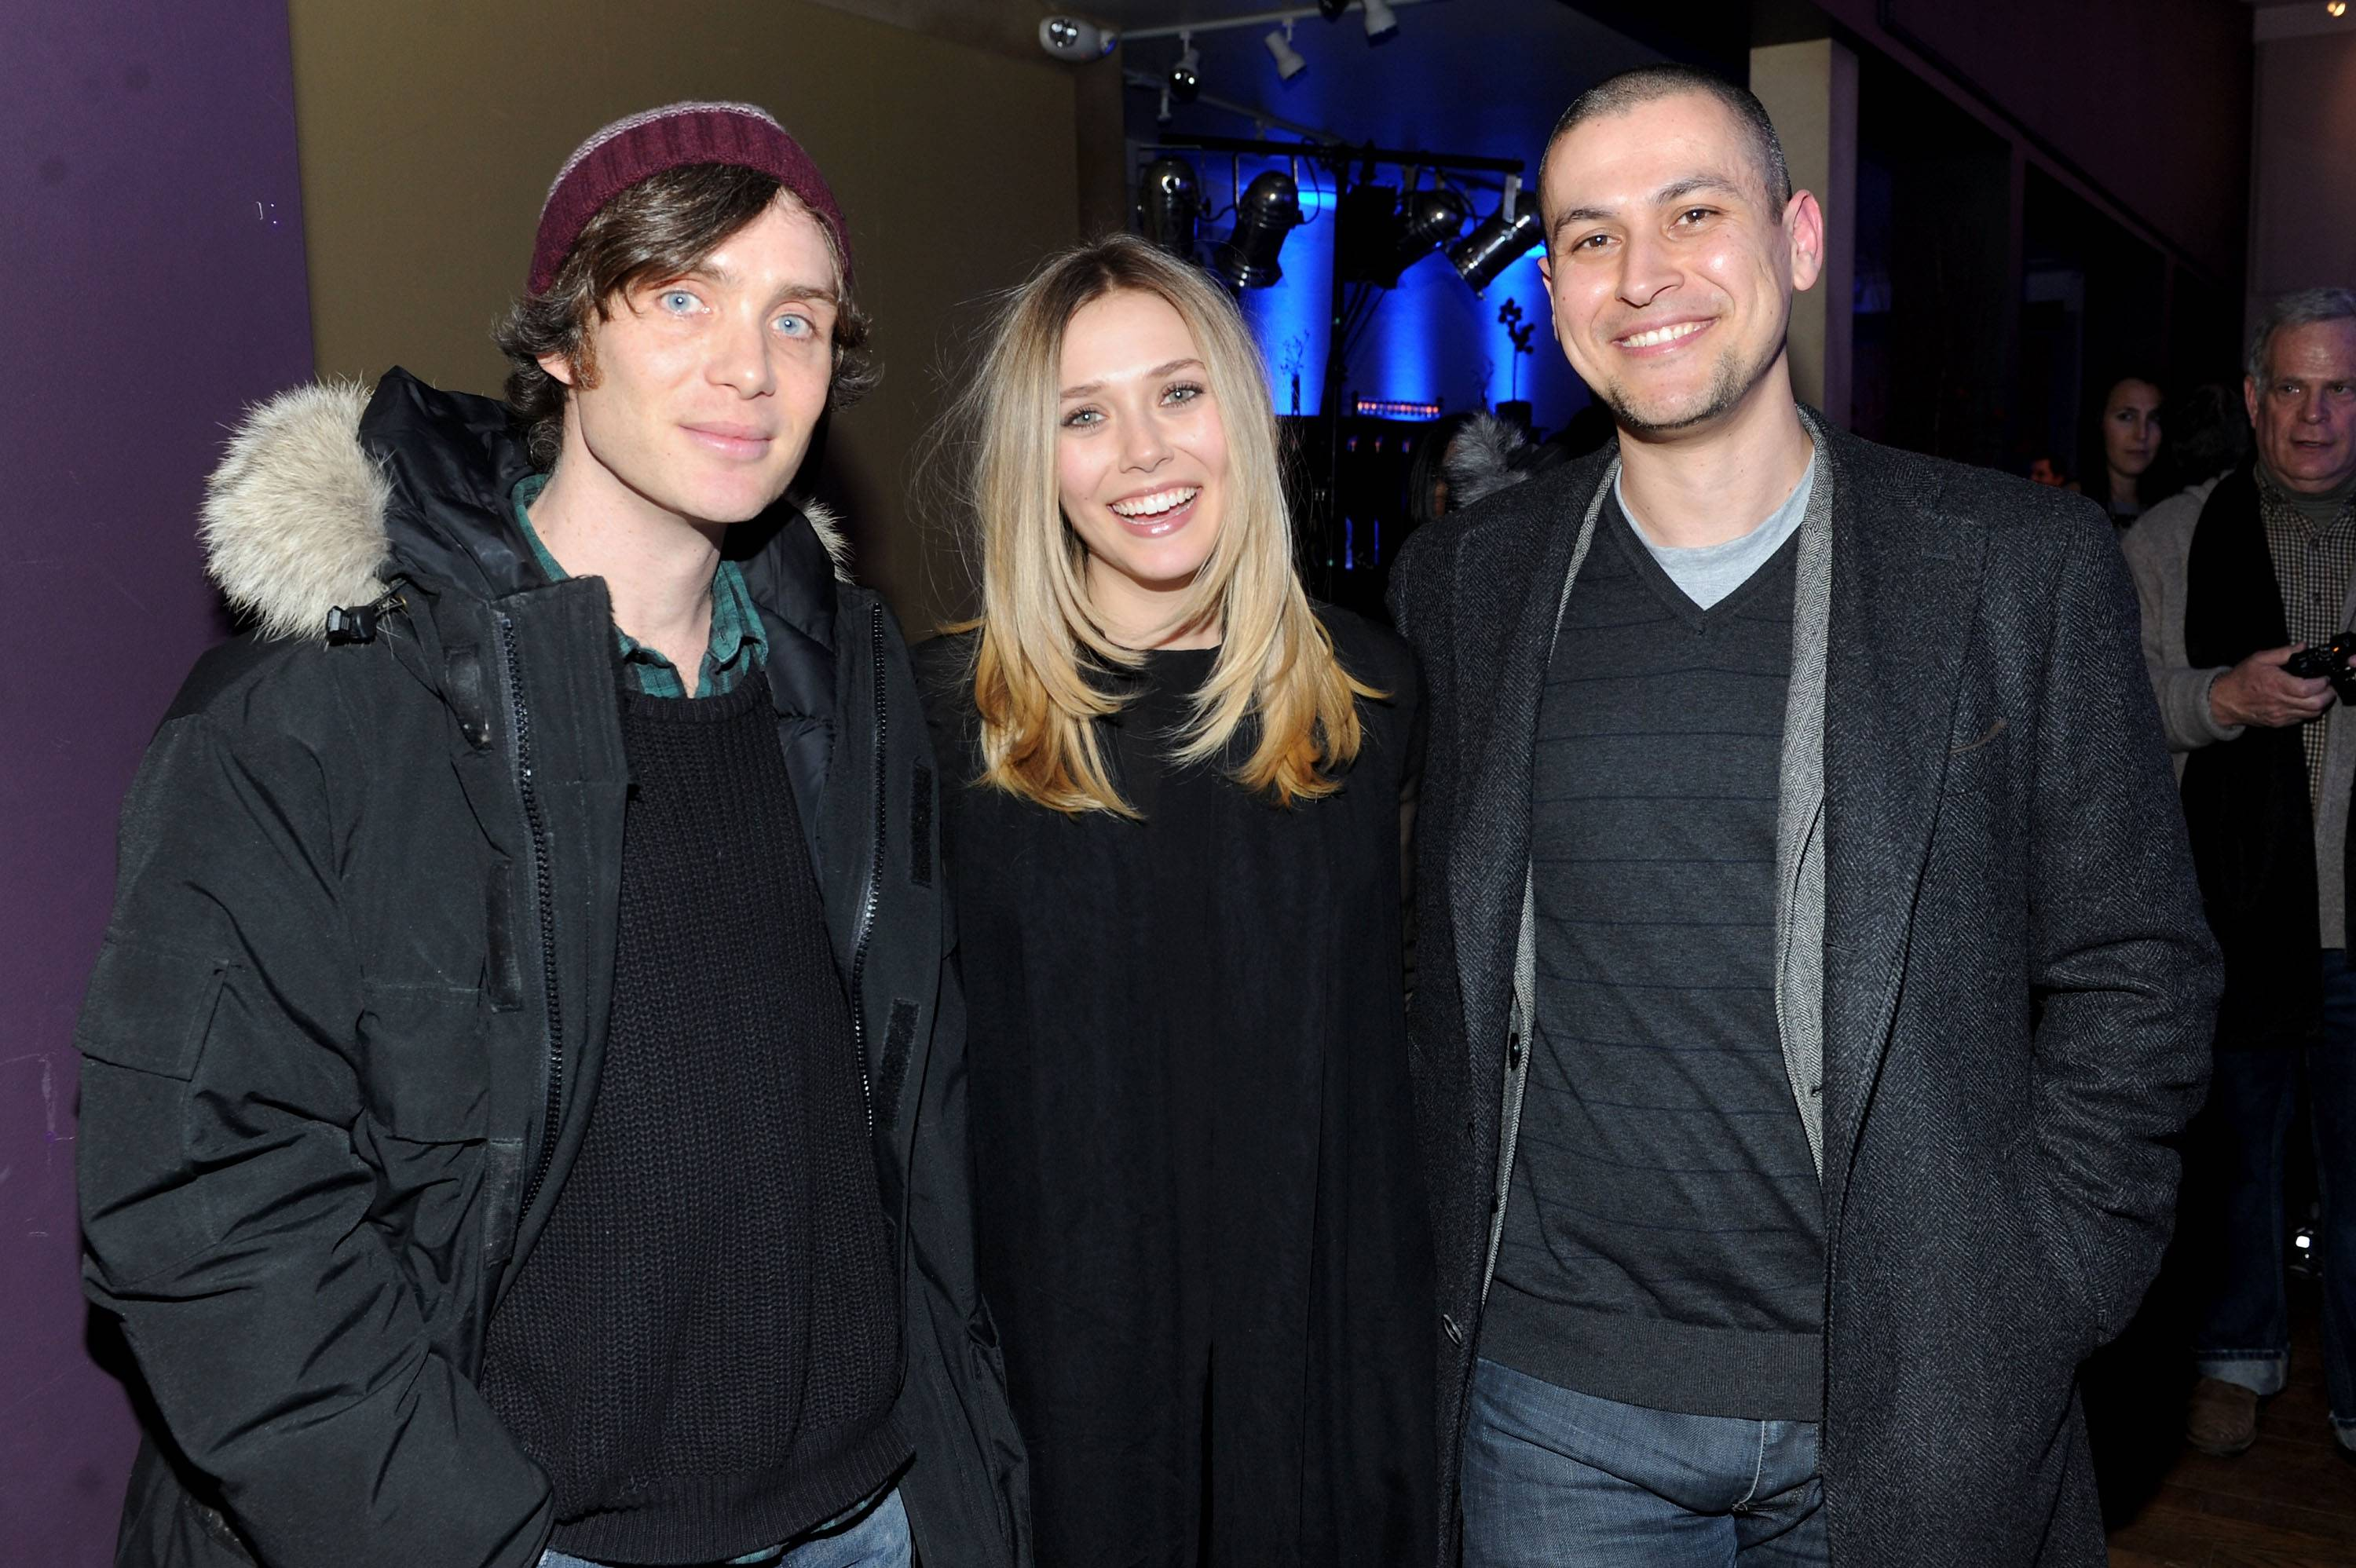 Cillian Murphy, Elizabeth Olsen and Rodrigo Cortes at the